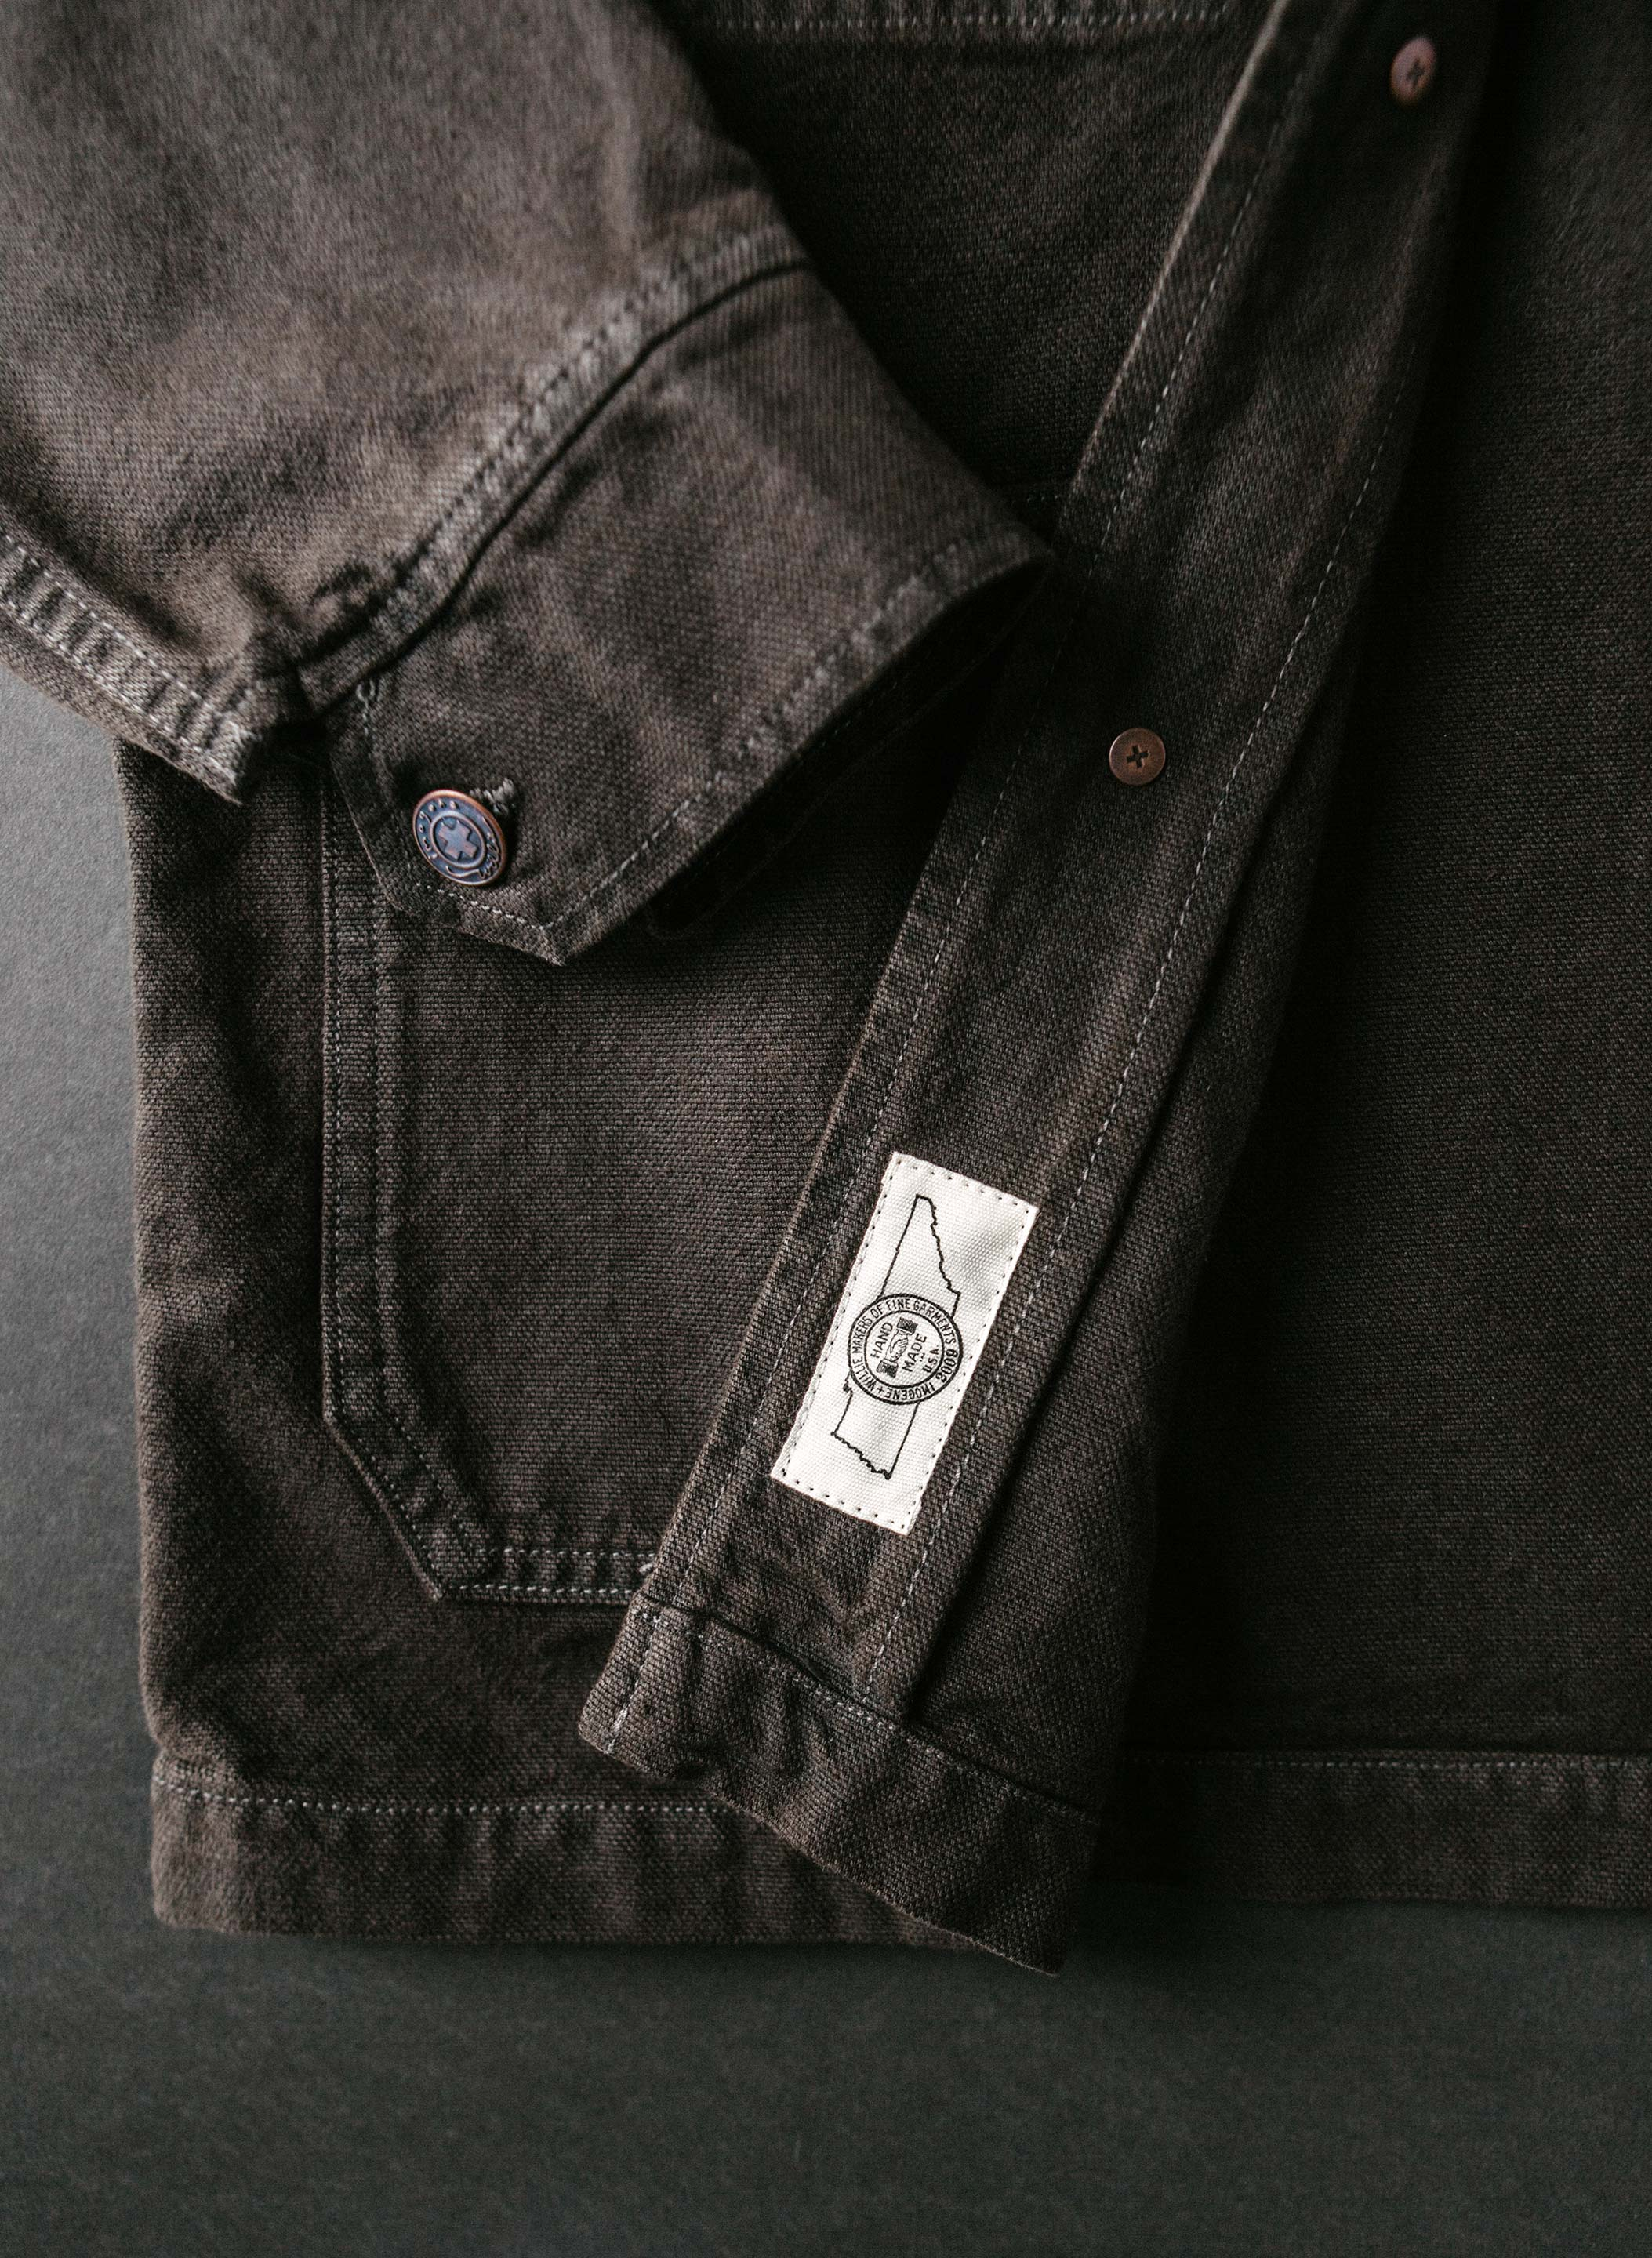 imogene + willie - chainstitch jack overdyed slate jacket